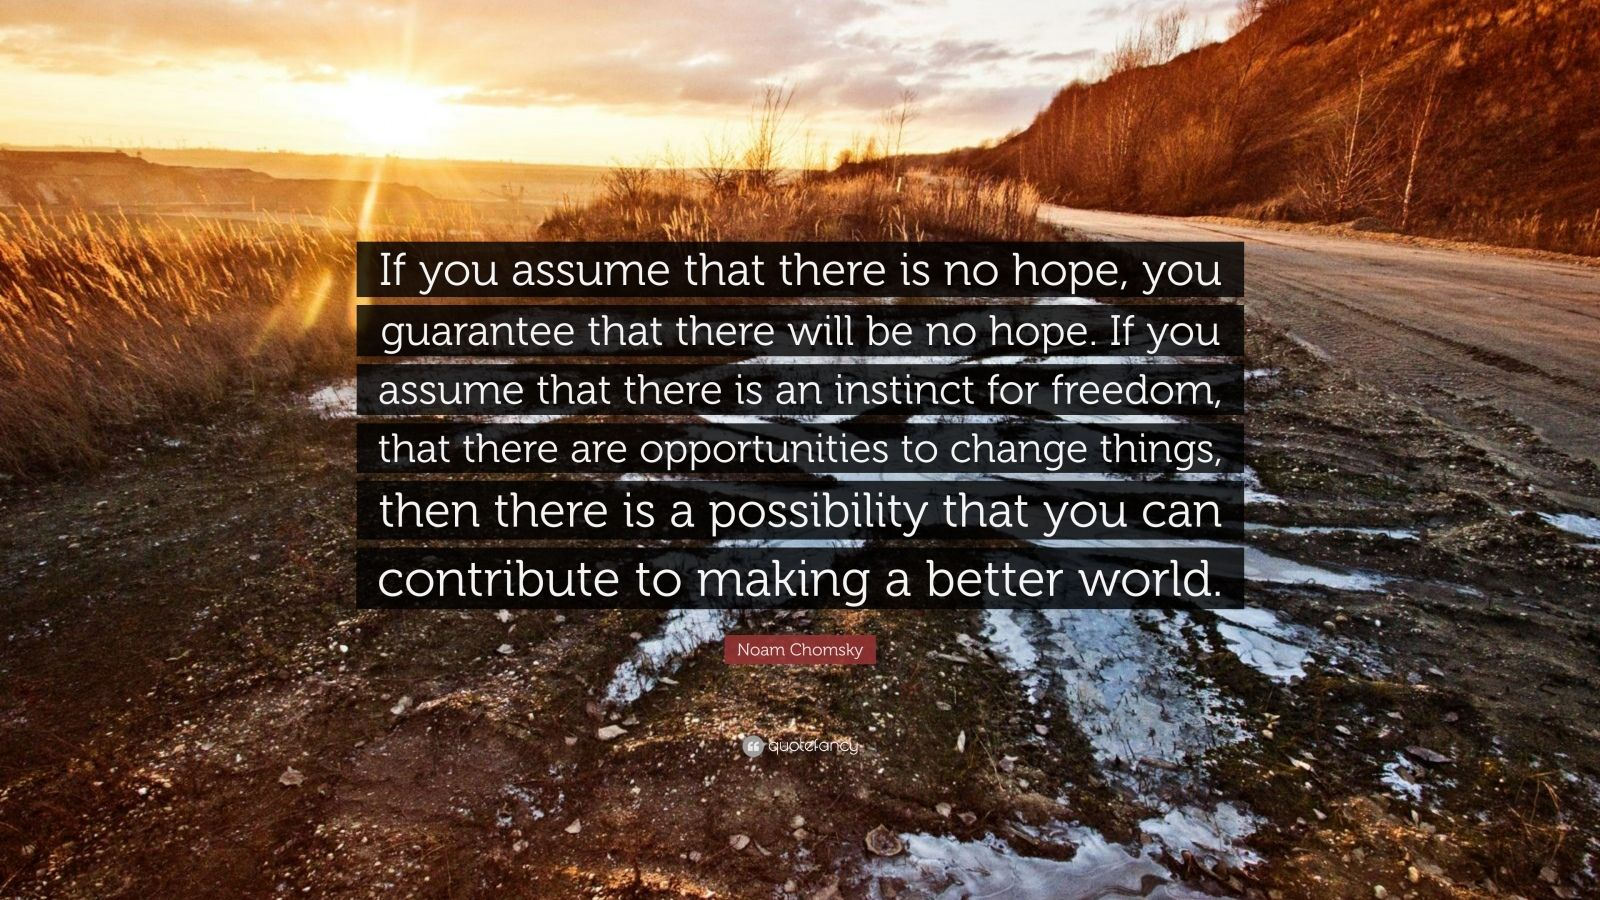 "Noam Chomsky Quote: ""If you assume that there is no hope, you guarantee that there will be no hope. If you assume that there is an instinct for freedom, that there are opportunities to change things, then there is a possibility that you can contribute to making a better world."""